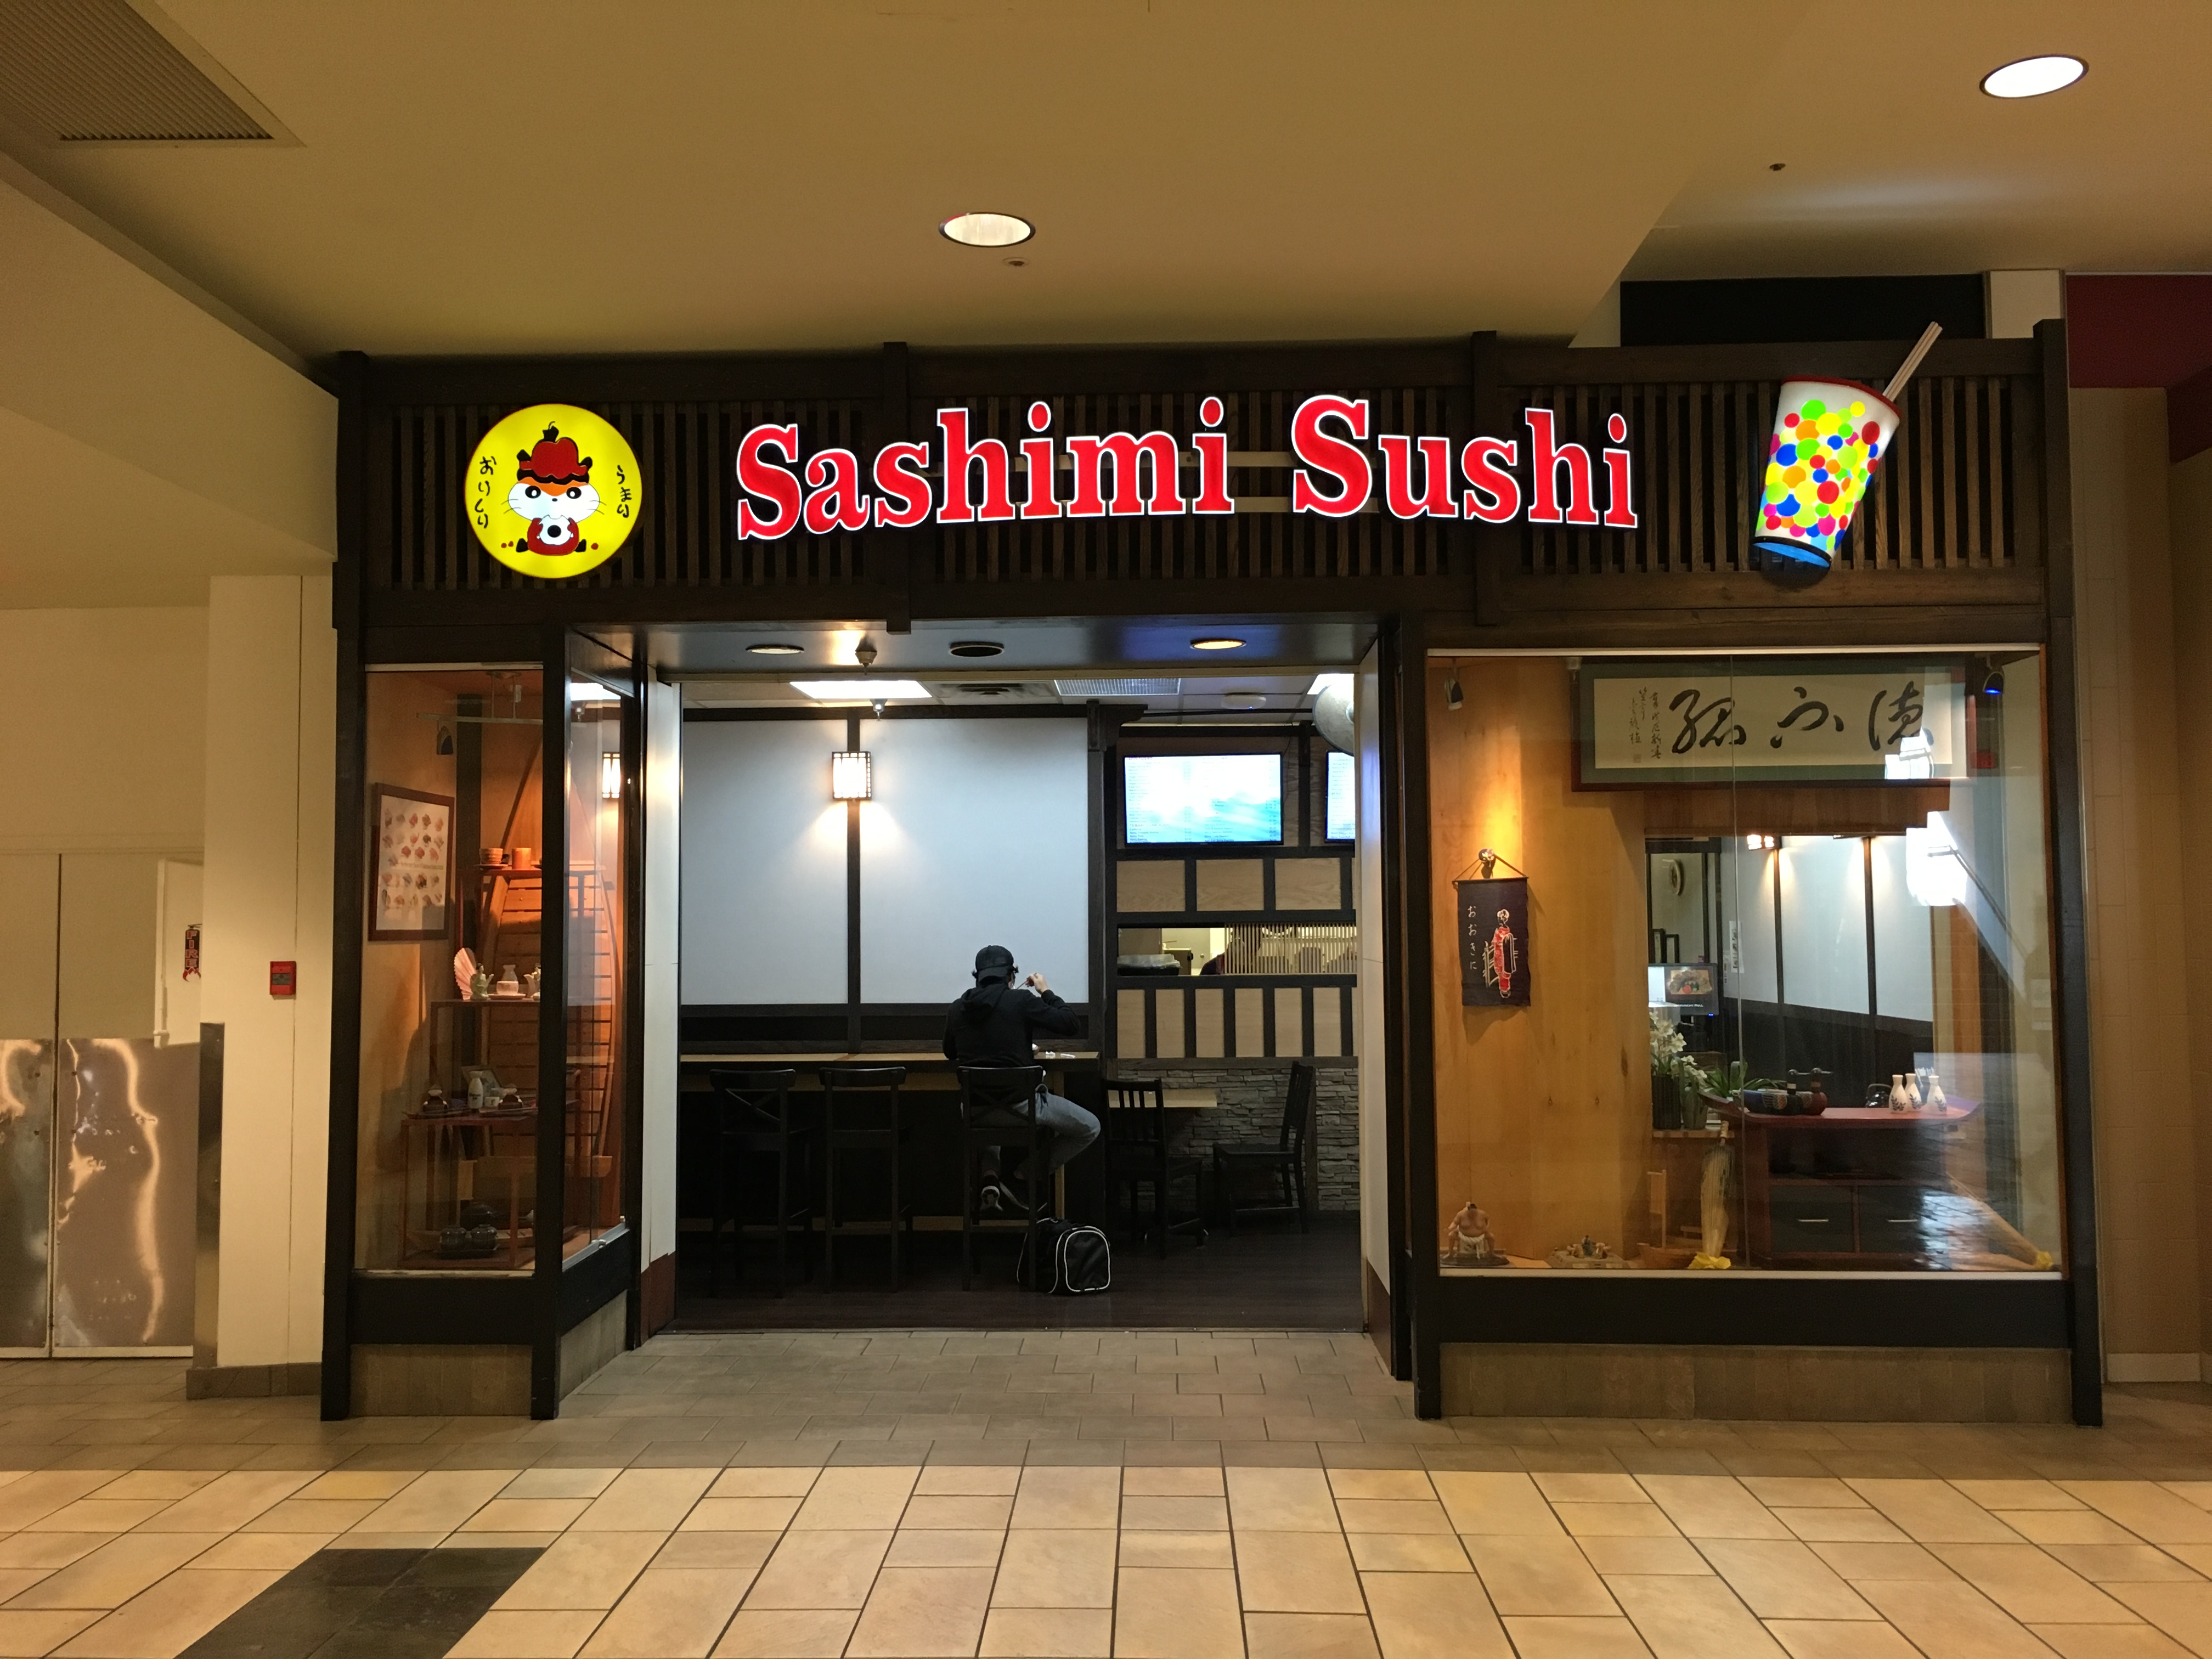 Sashimi Sushi in Lougheed Mall